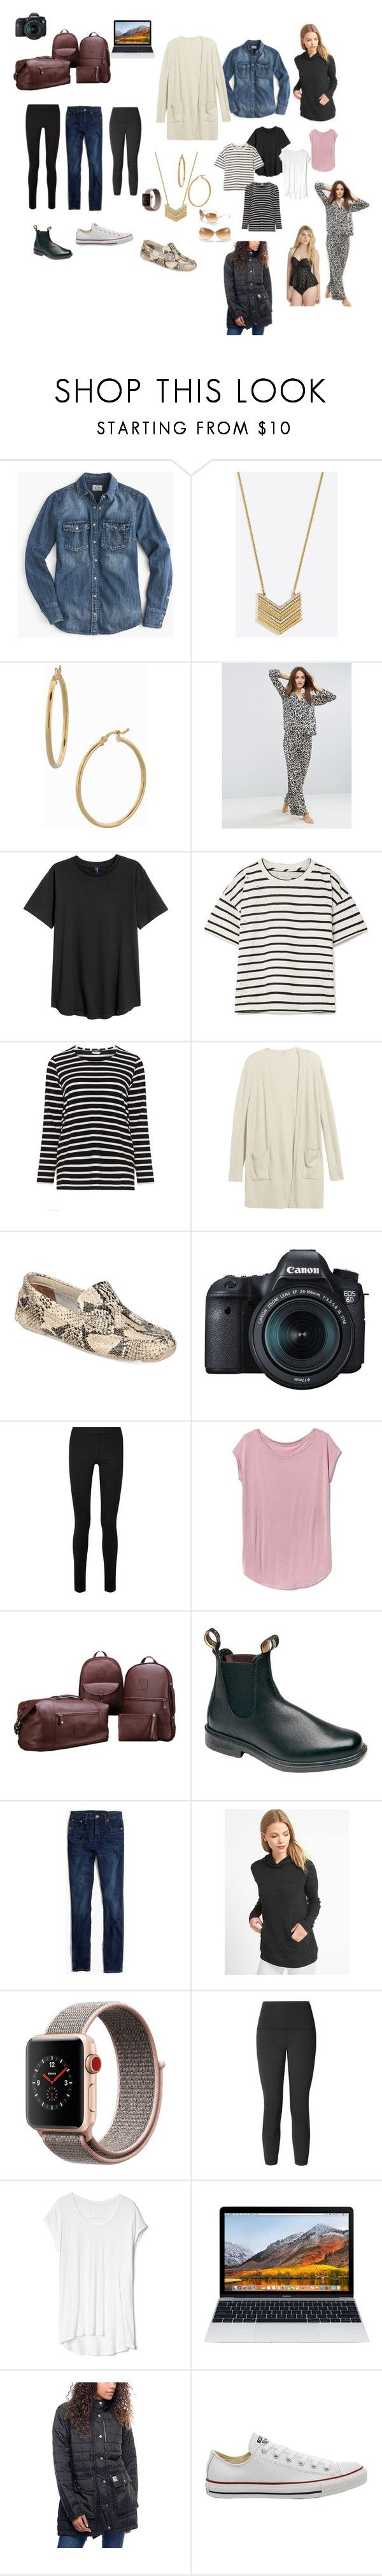 """CR Packing List"" by meghan-walker-1 on Polyvore featuring J.Crew, Bony Levy, ASOS, Current/Elliott, Frapp, Madewell, Cole Haan, Eos, The Row and Blundstone"